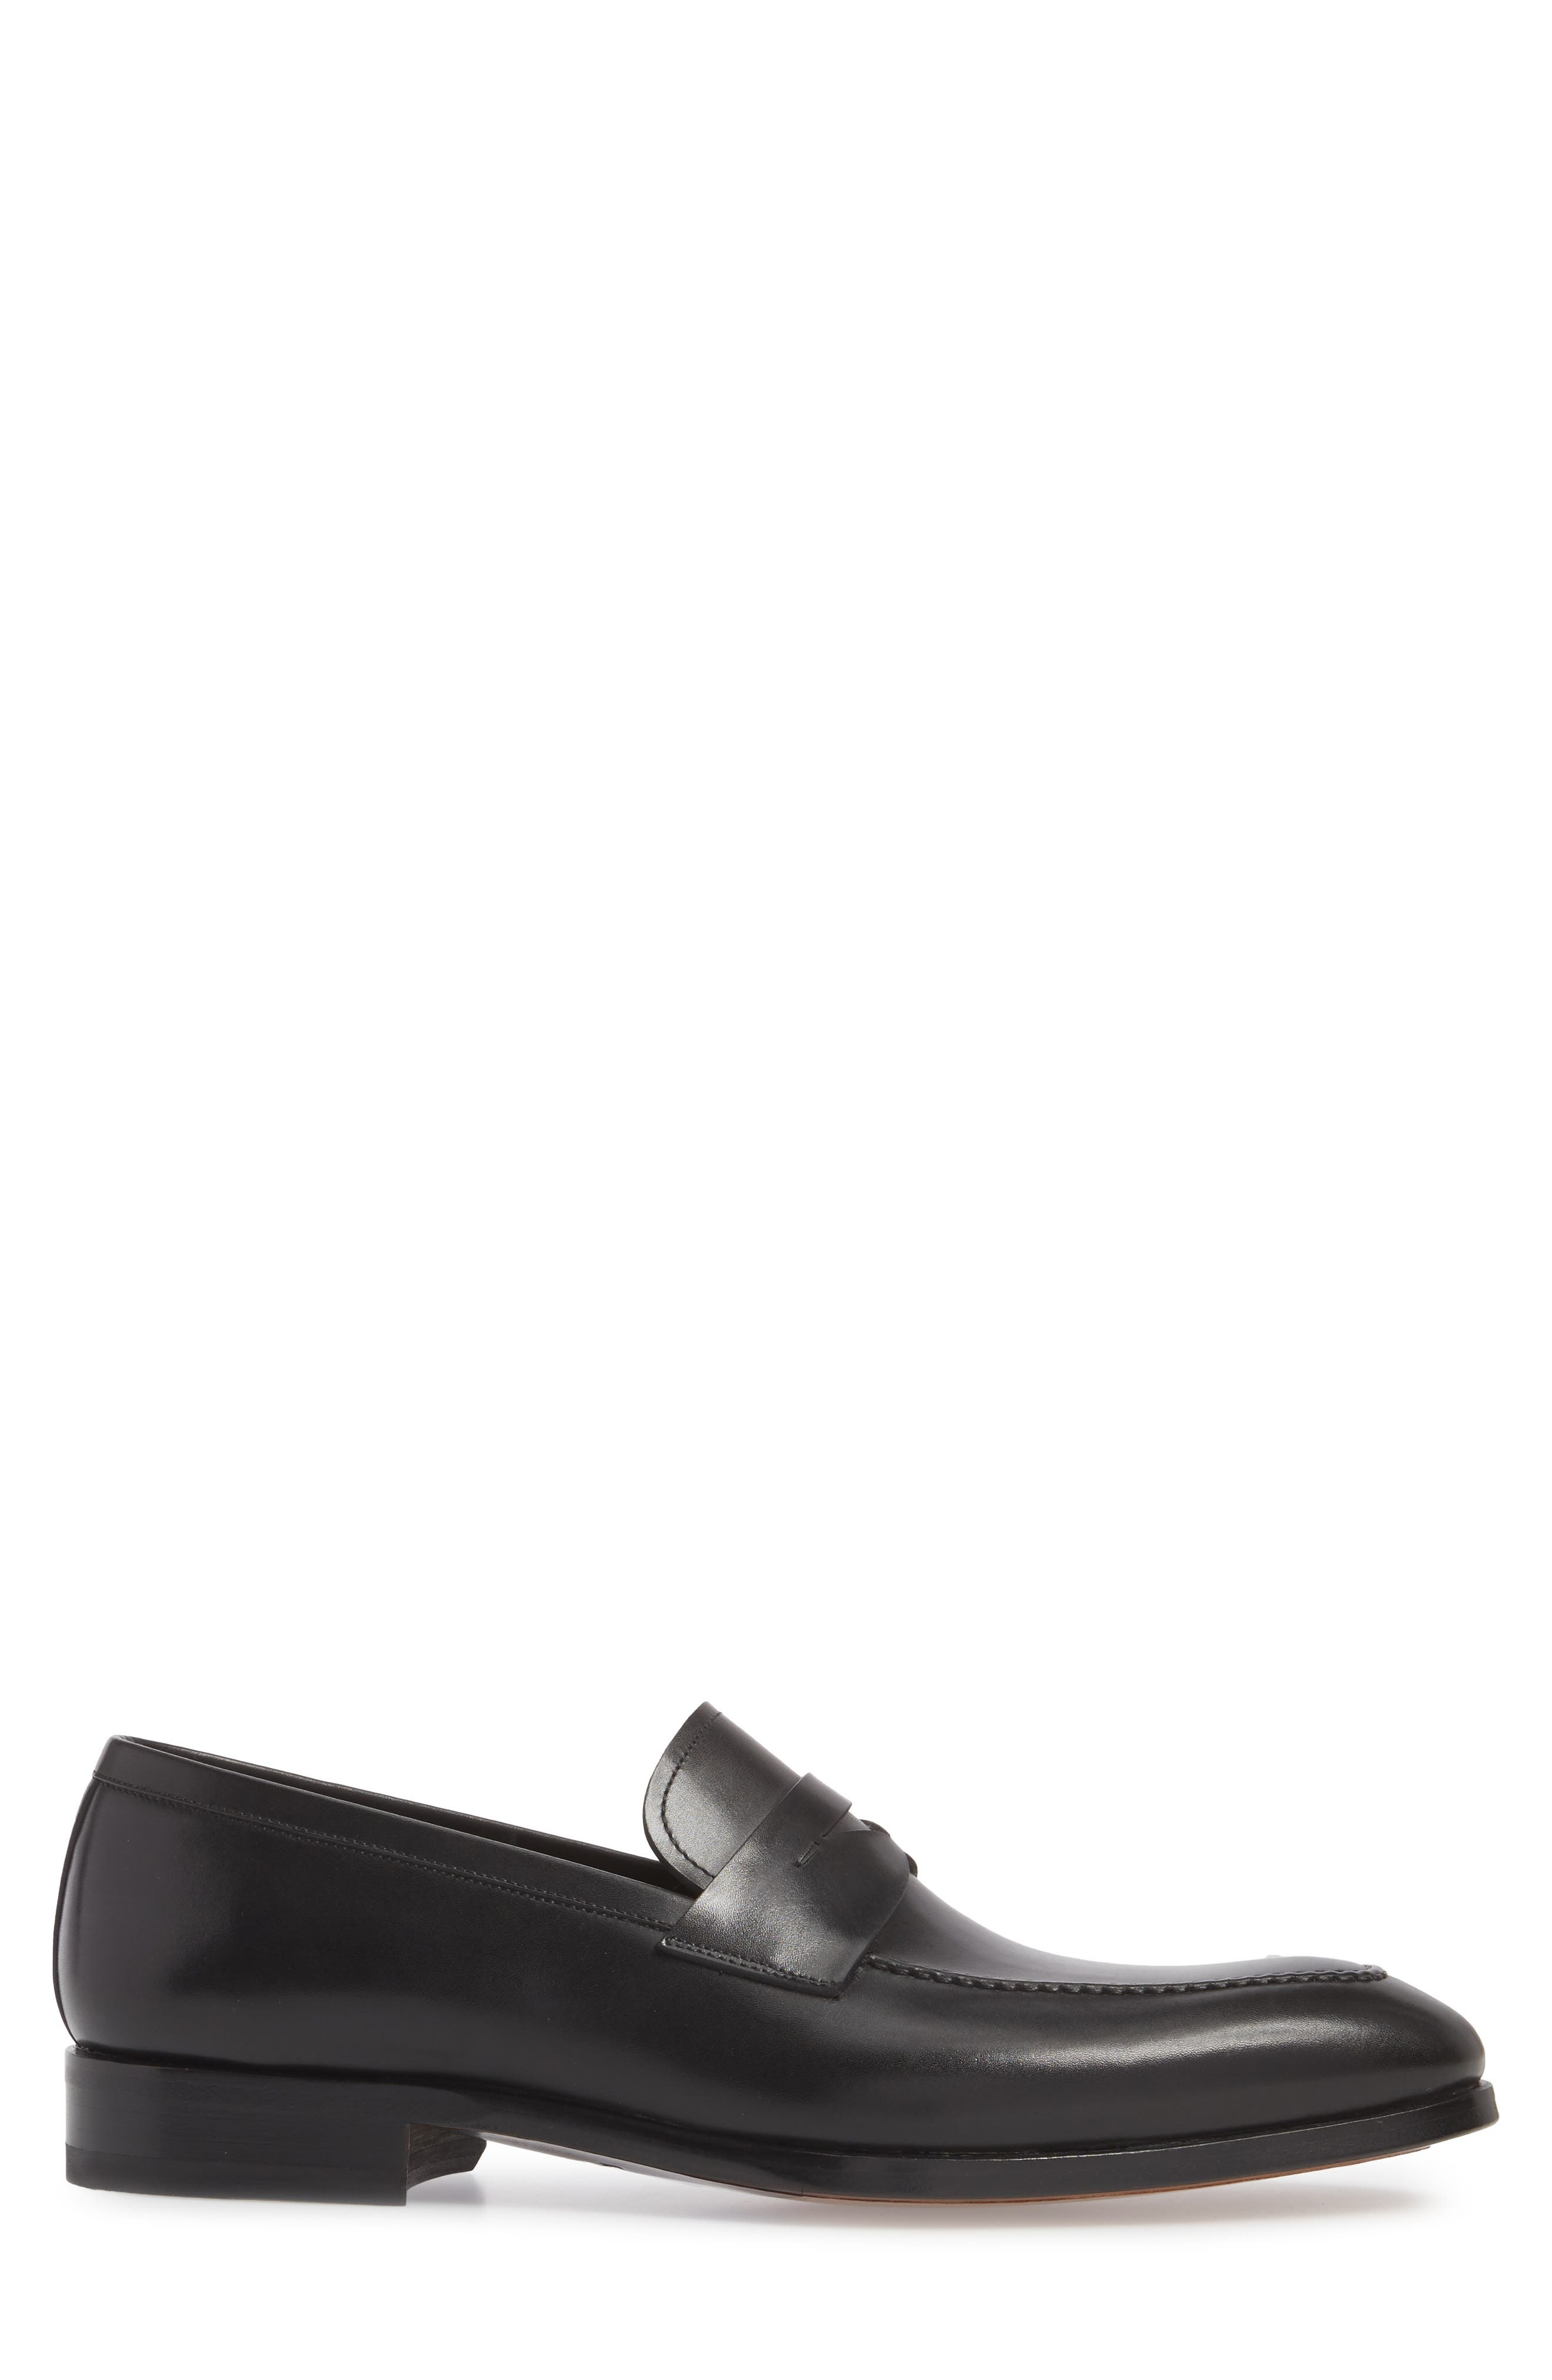 Rolly Apron Toe Penny Loafer,                             Alternate thumbnail 3, color,                             BLACK LEATHER